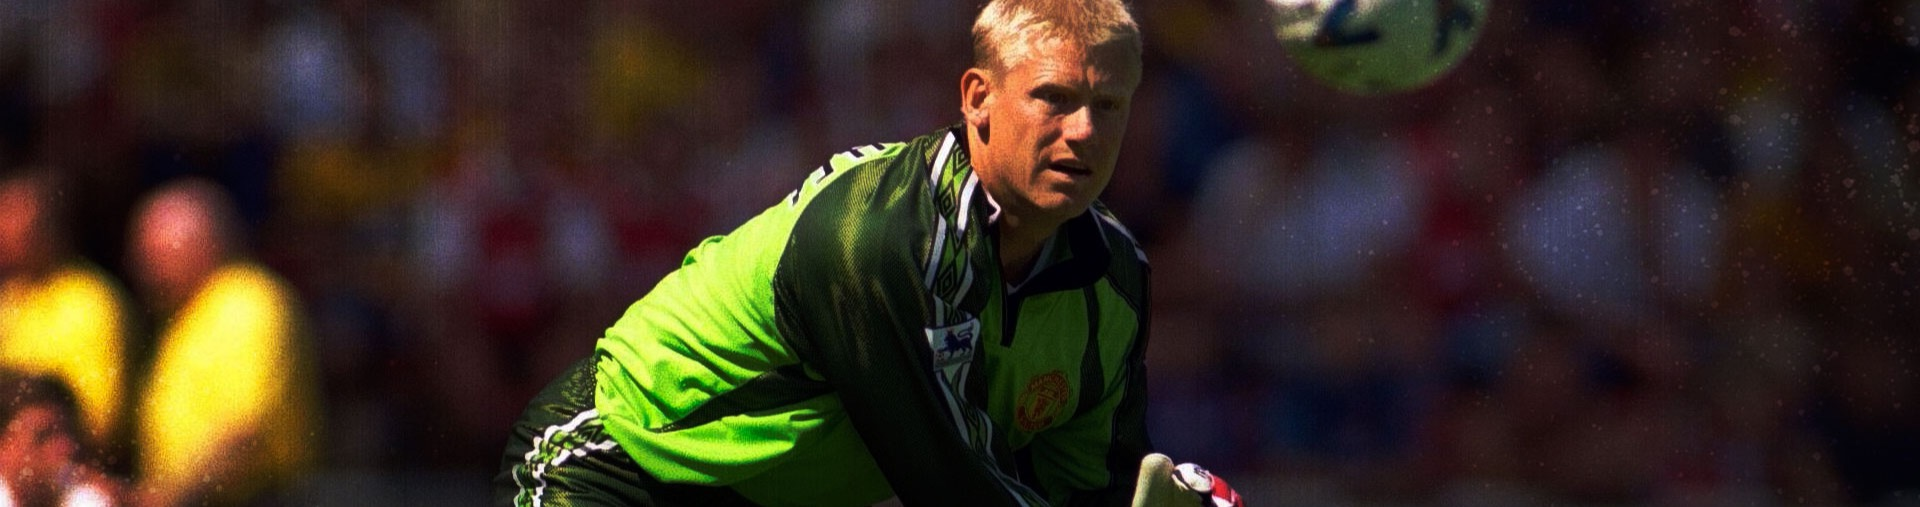 premier-league-legends-peter-schmeichel